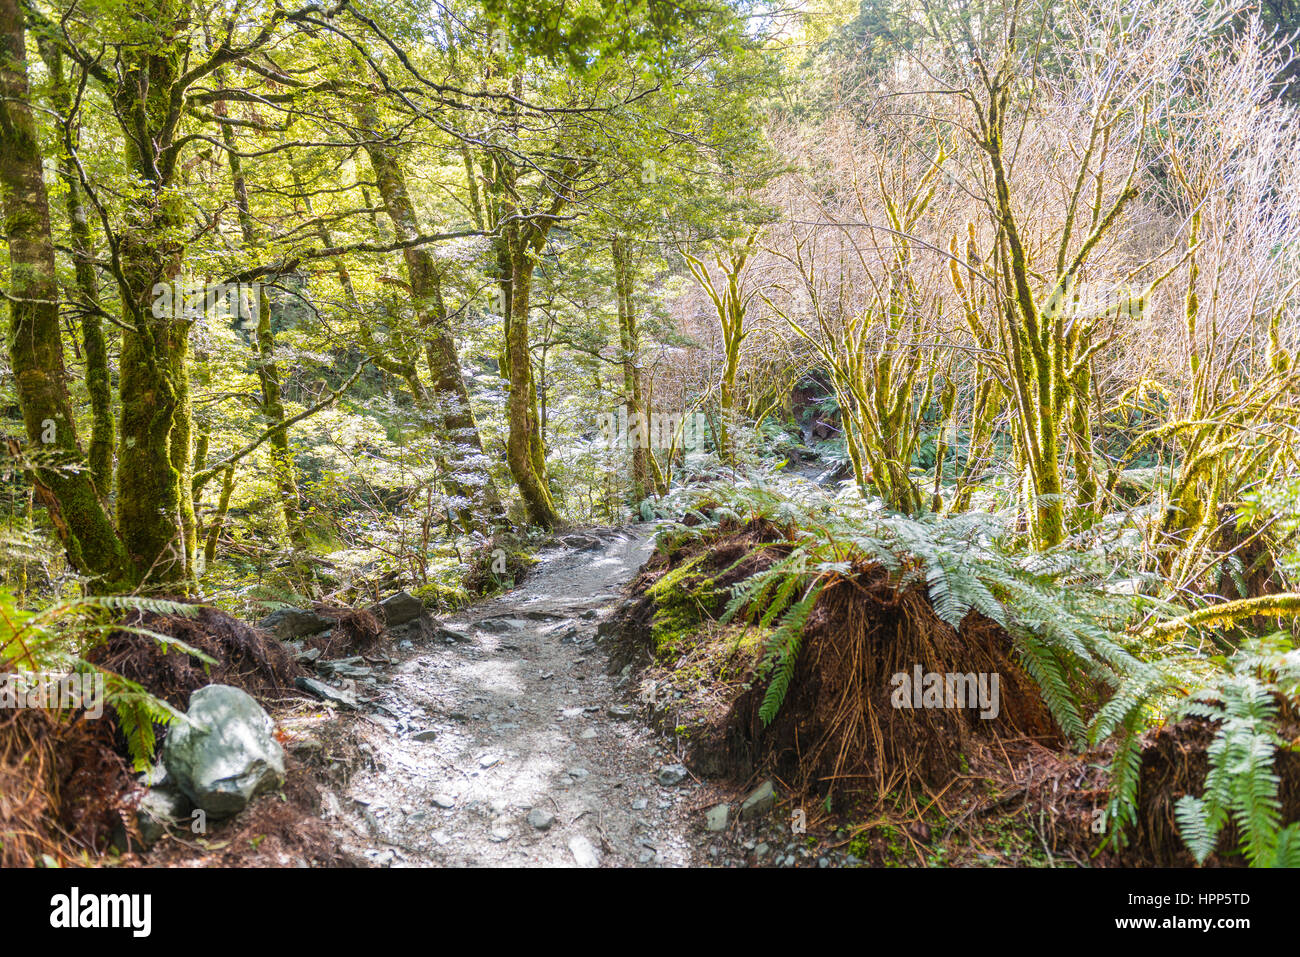 Trail through forest with fern, alpine vegetation, Mount Aspiring National Park, Otago, Southland, New Zealand - Stock Image